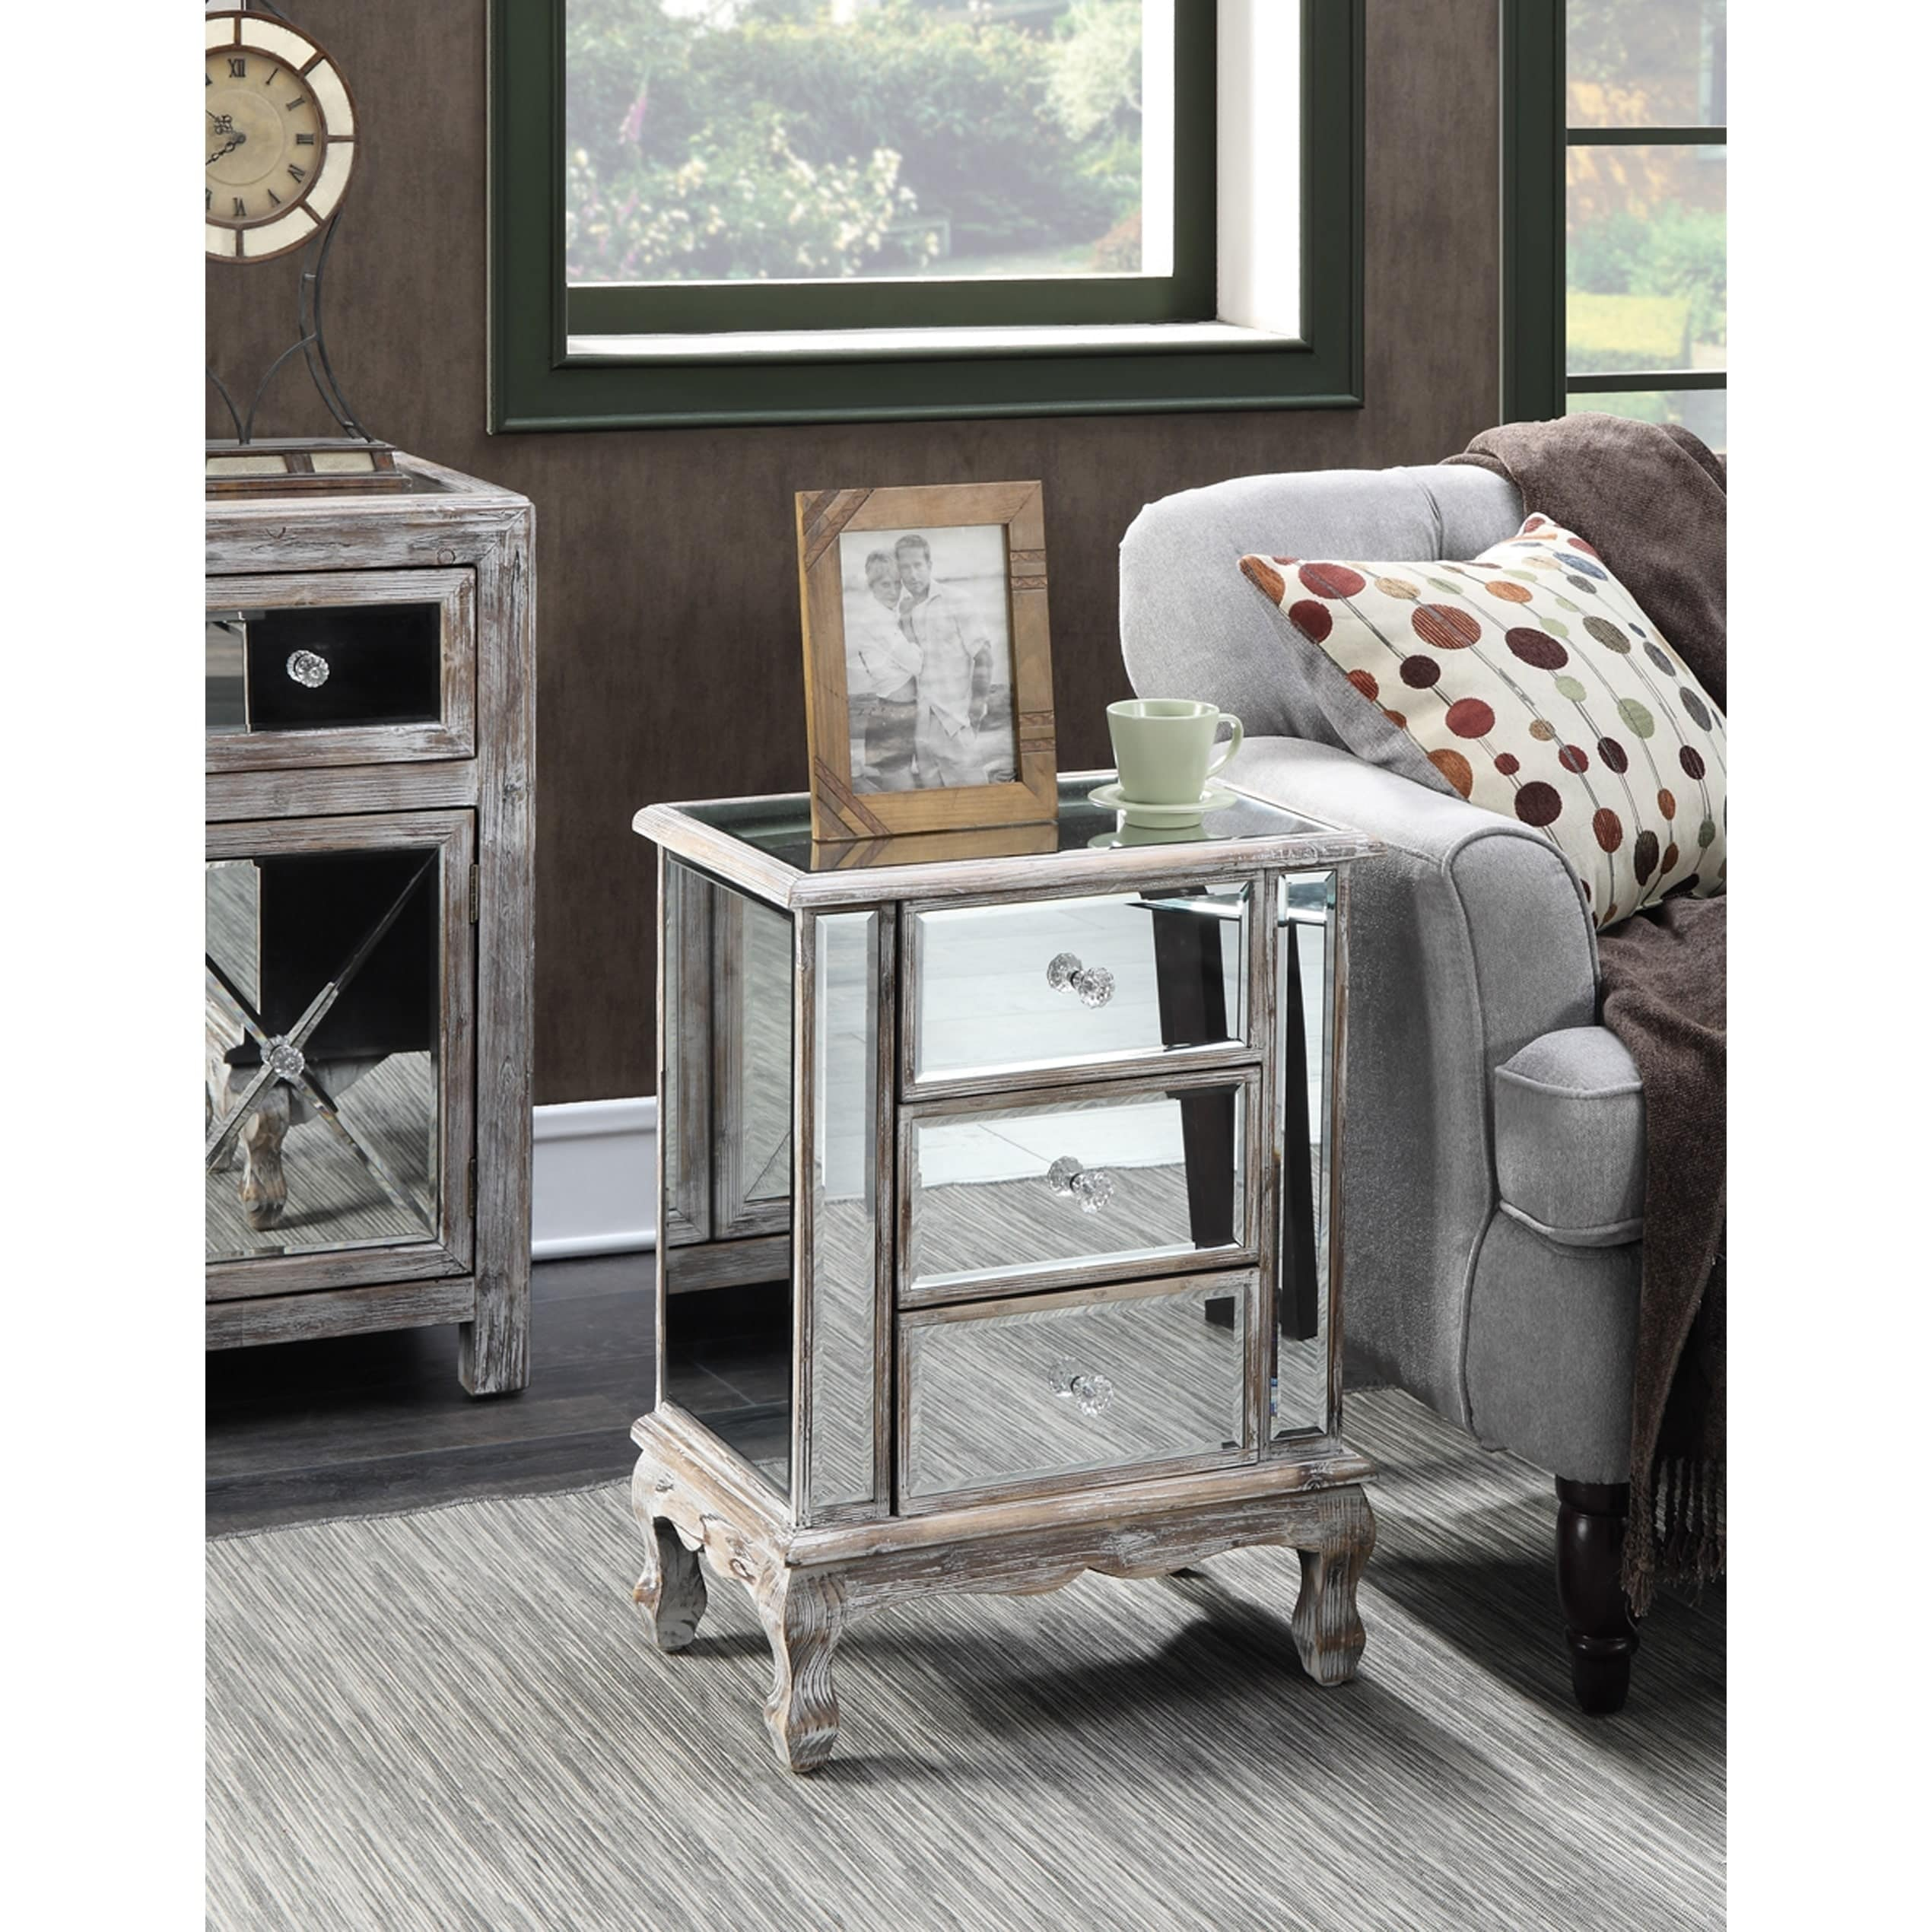 Charmant Gold Coast Vineyard 3 Drawer Mirrored End Table